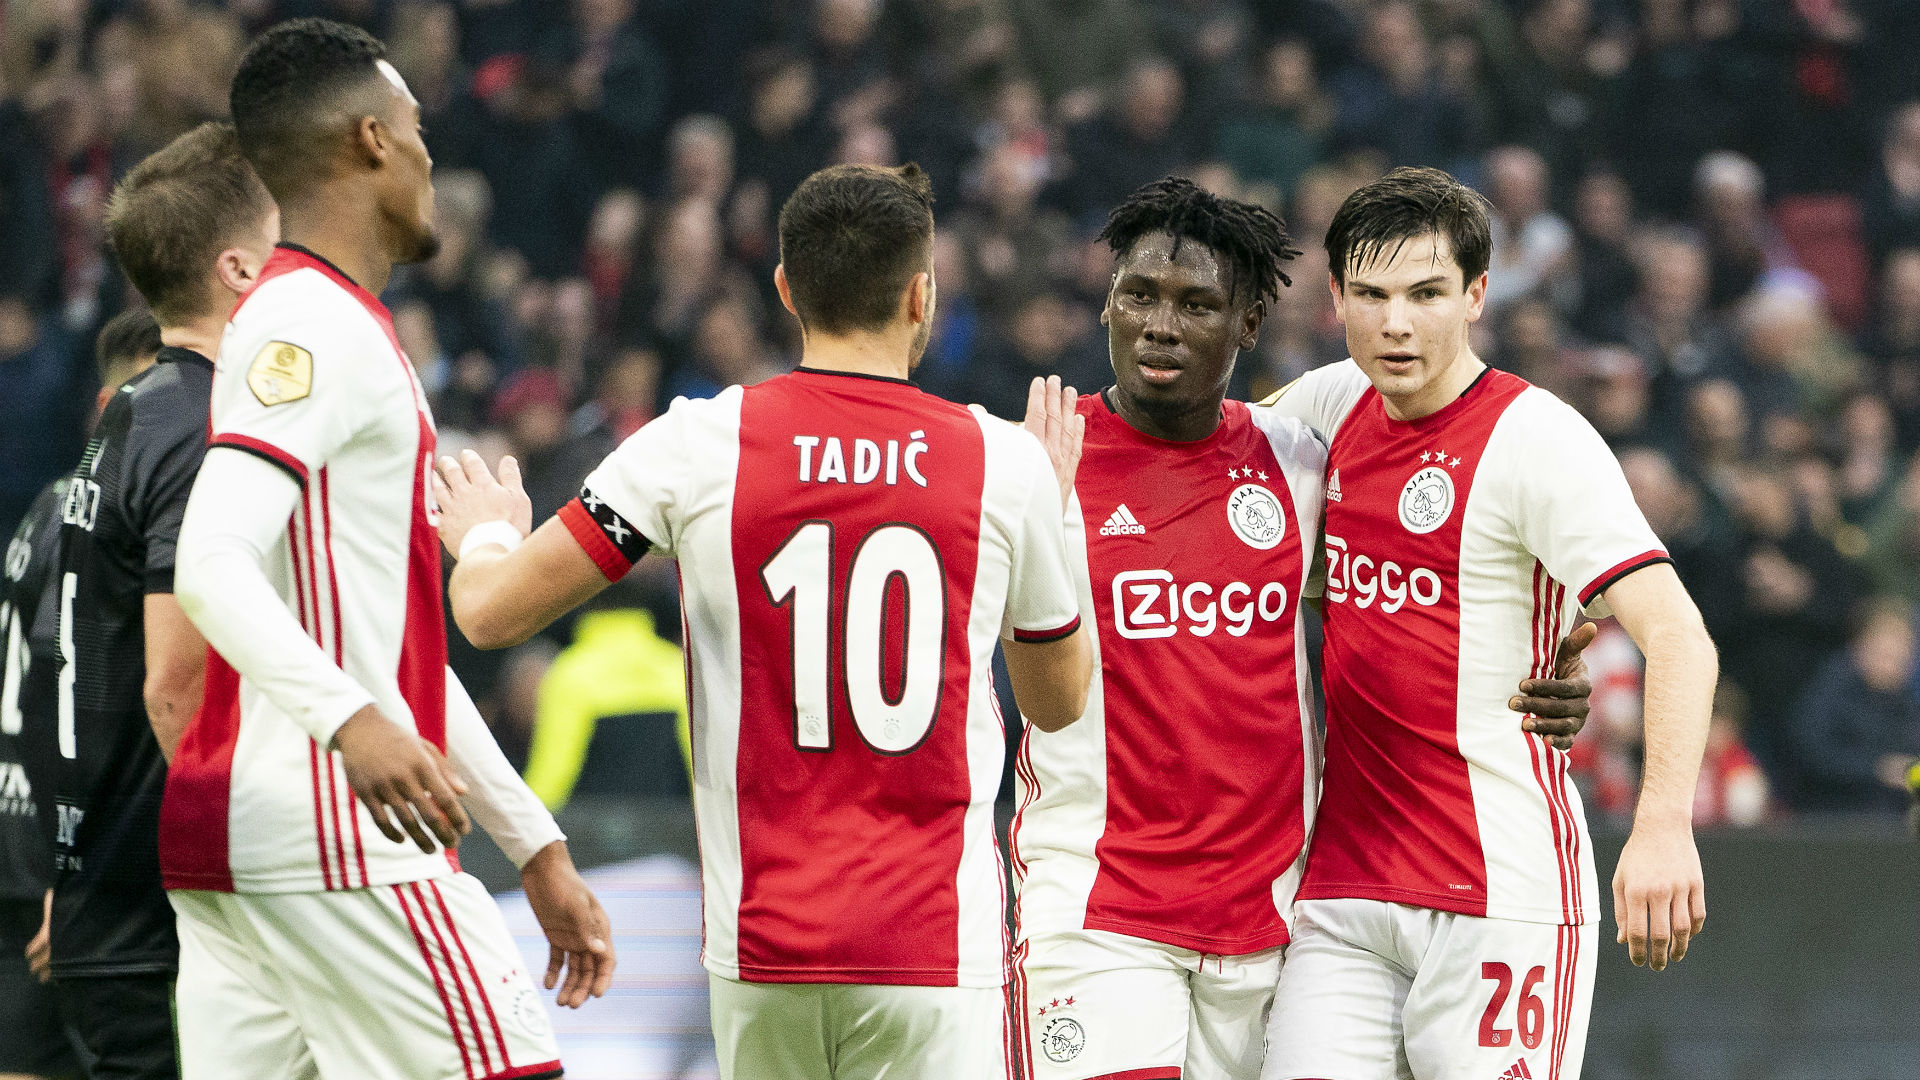 Lassina Traore Bags Brace As Ajax Ease Past Holstein Kiel Goal Com